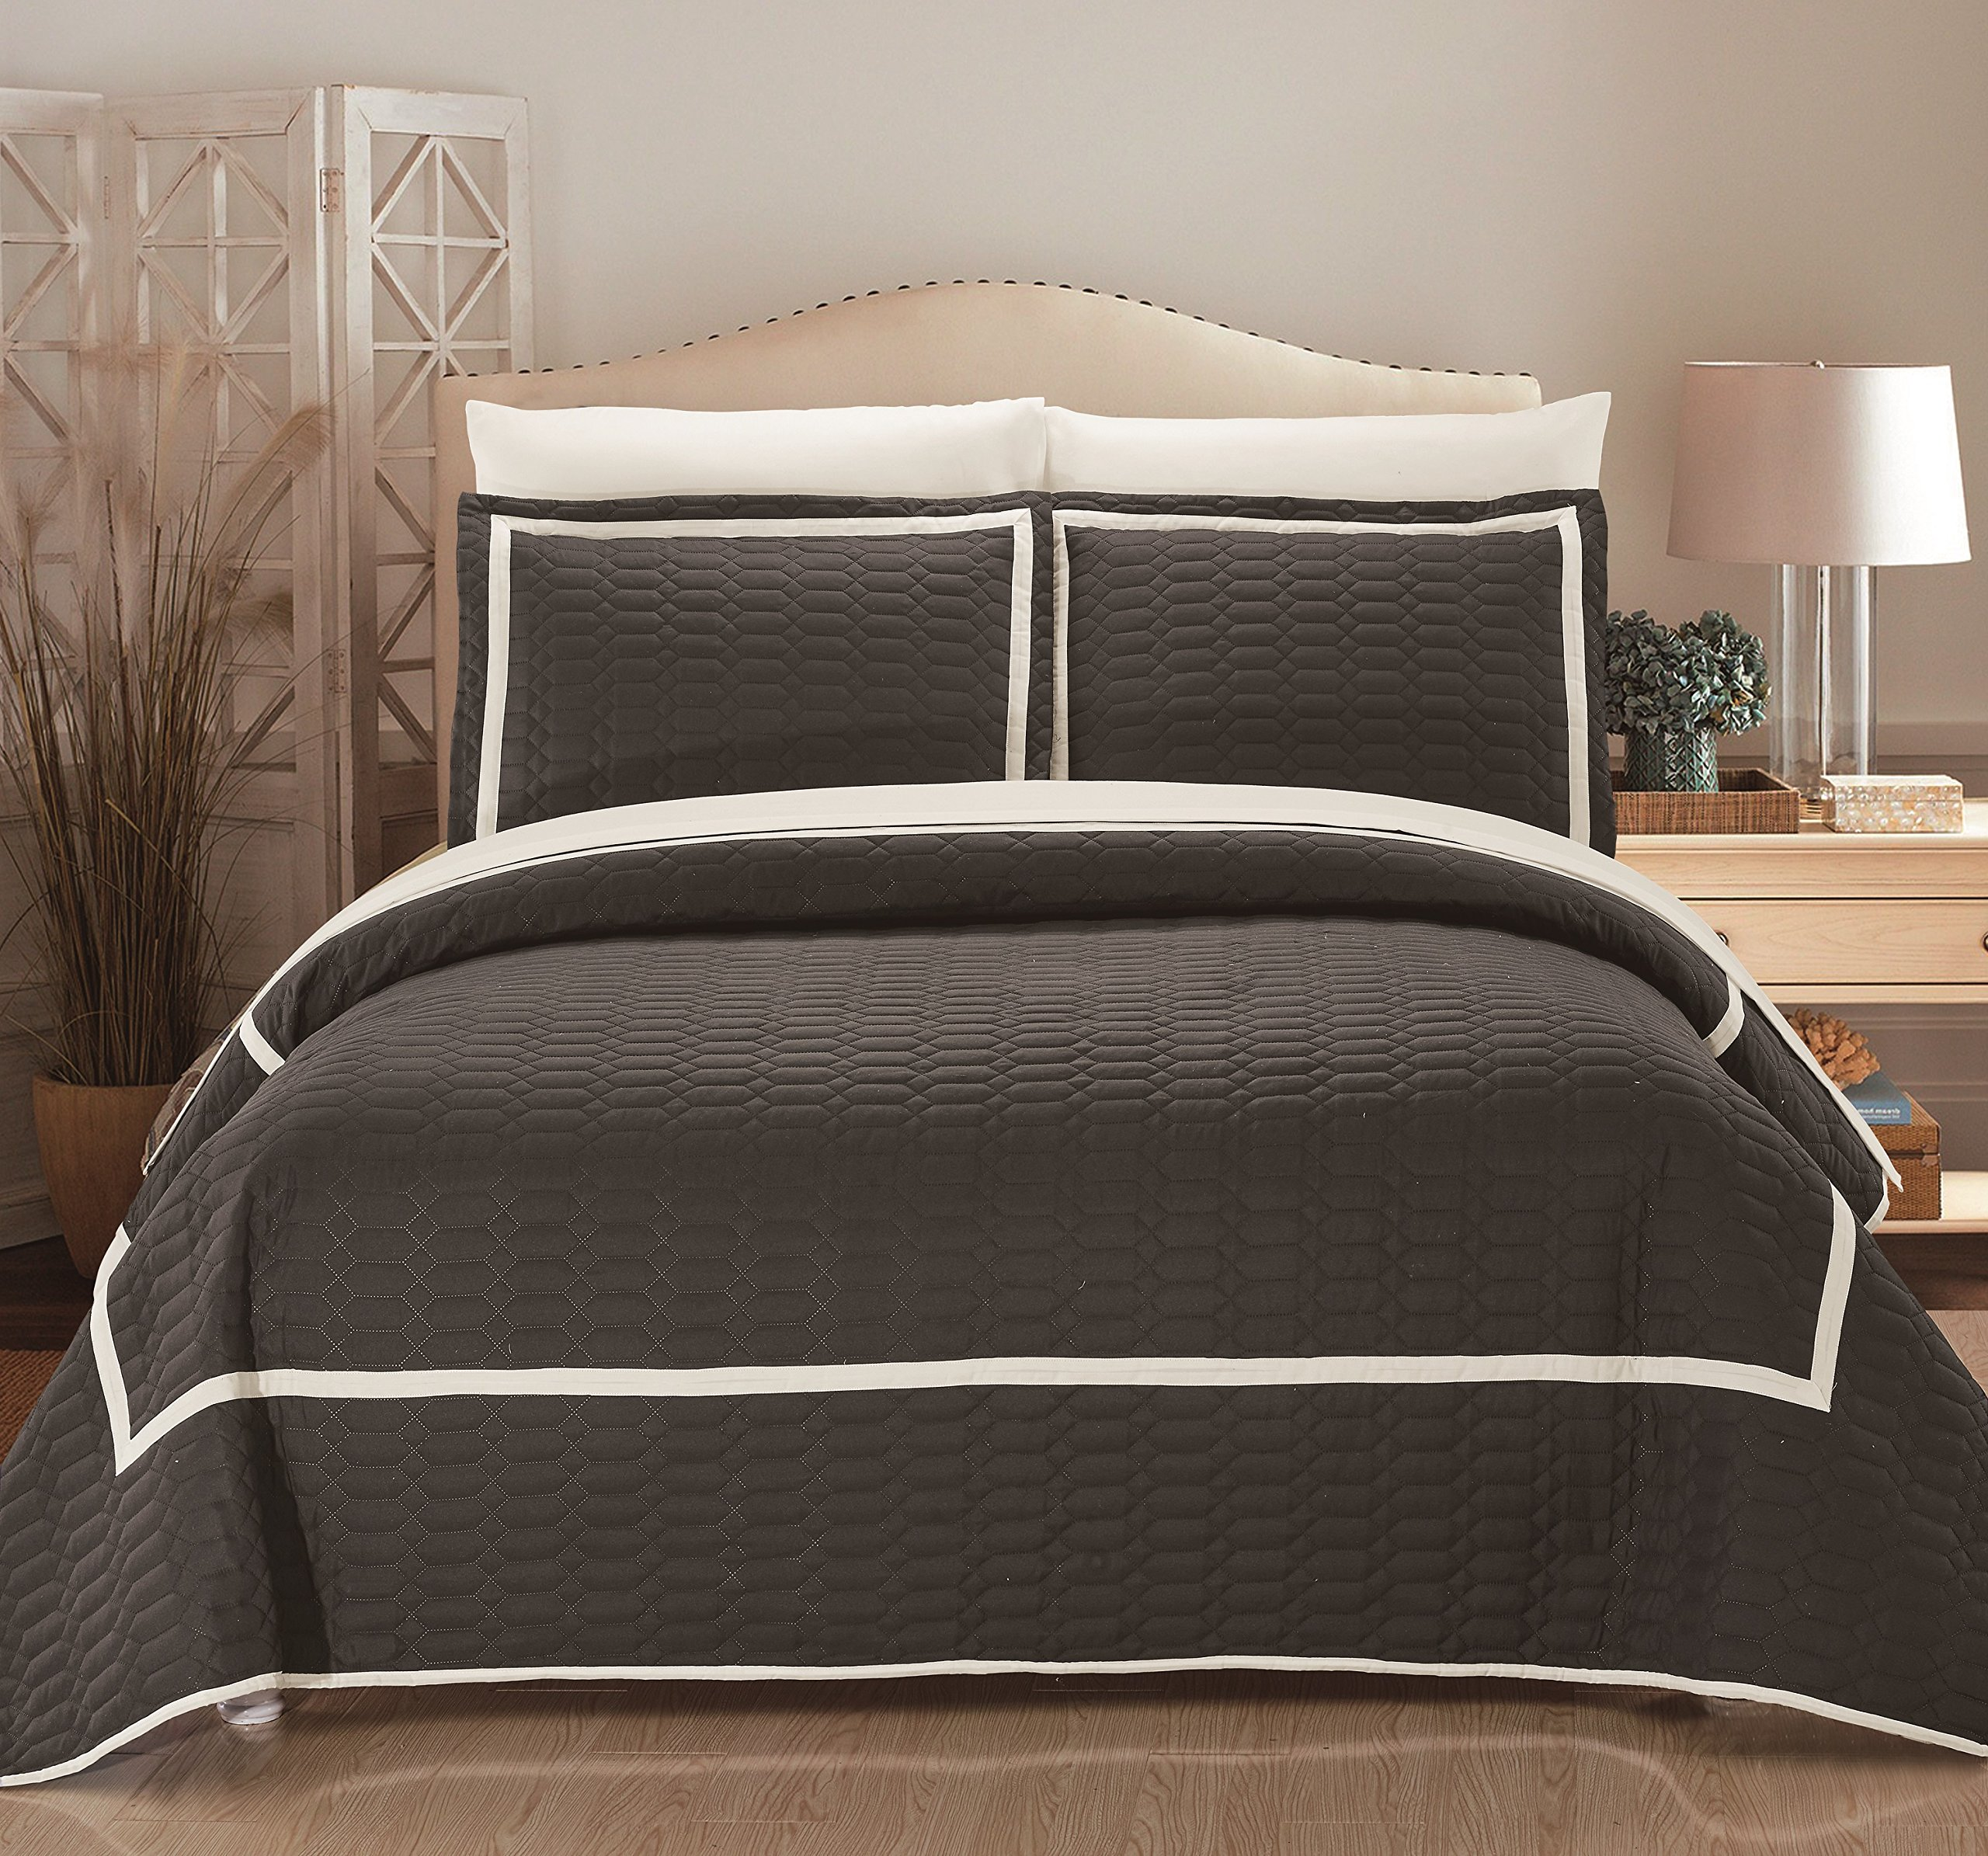 Selby 3 Piece Hotel Collection 2 tone banded Quilted Geometrical Embroidered,King Quilt Set Grey